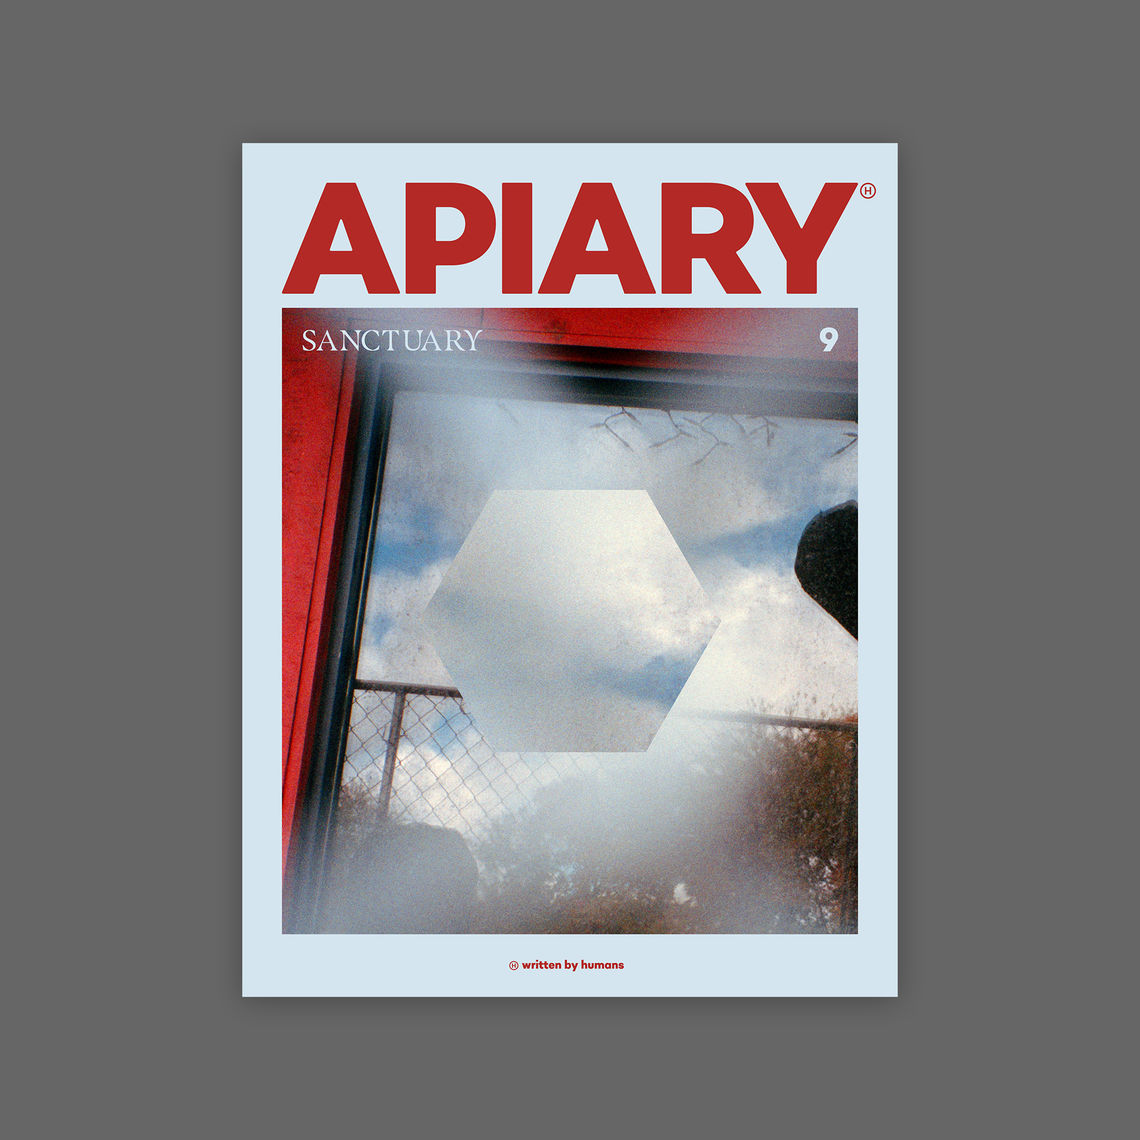 APIARY 9 Cover